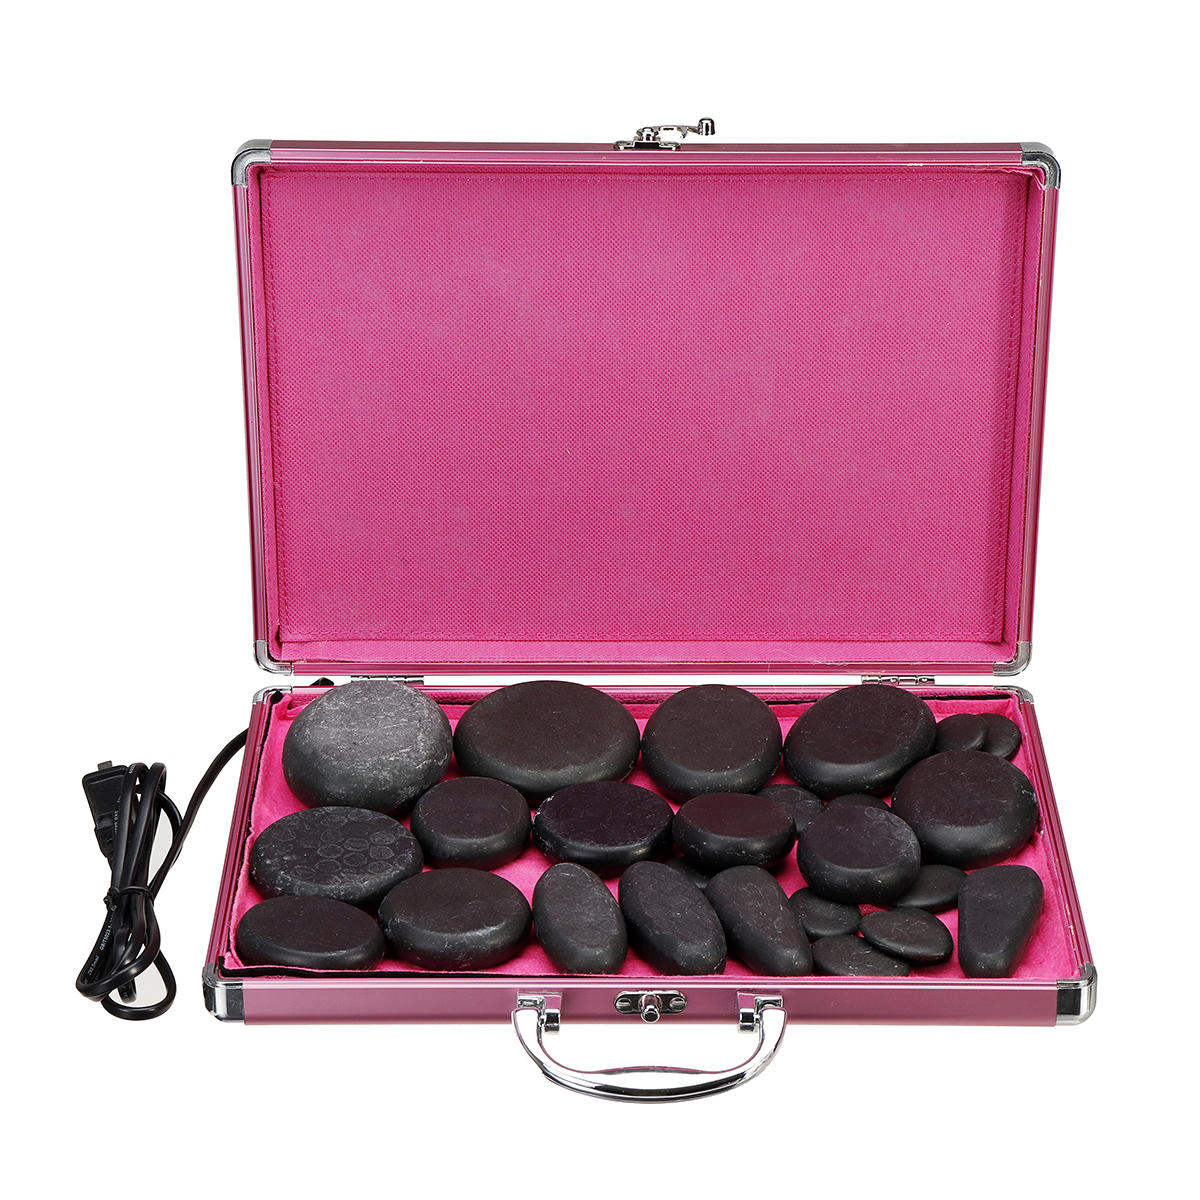 24PCS 110-220V Therapy Efficacy Spa Massage Stone Muscle Tension Legs Neck Tired Feet Back Shoulder Electric Massager Stone